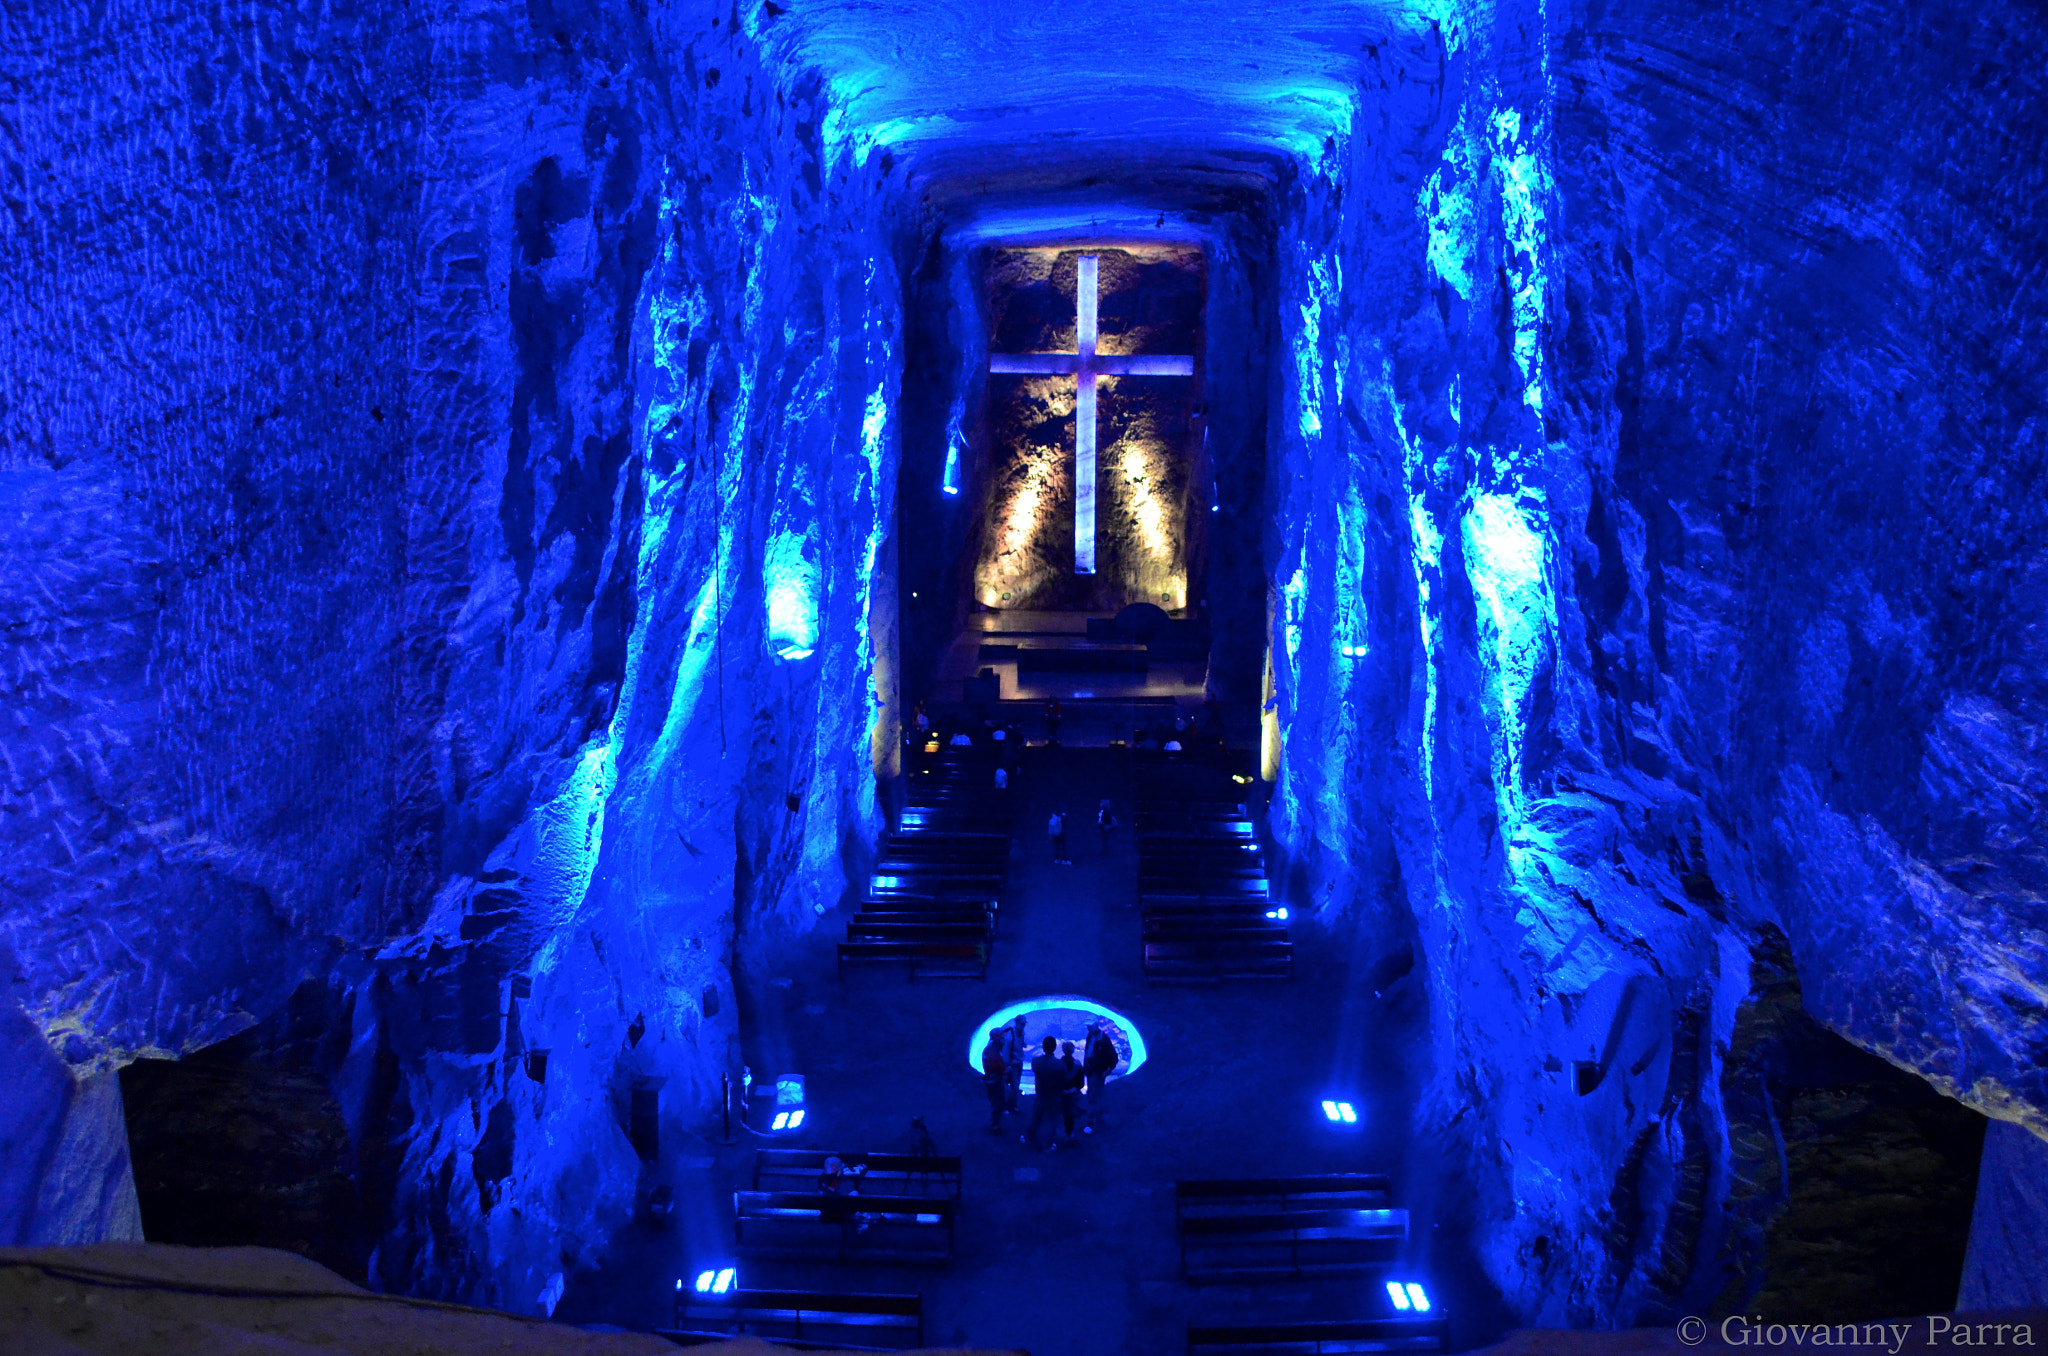 Photograph Catedral de Sal Zipaquirá - Salt Cathedral by Giovanny Parra on 500px